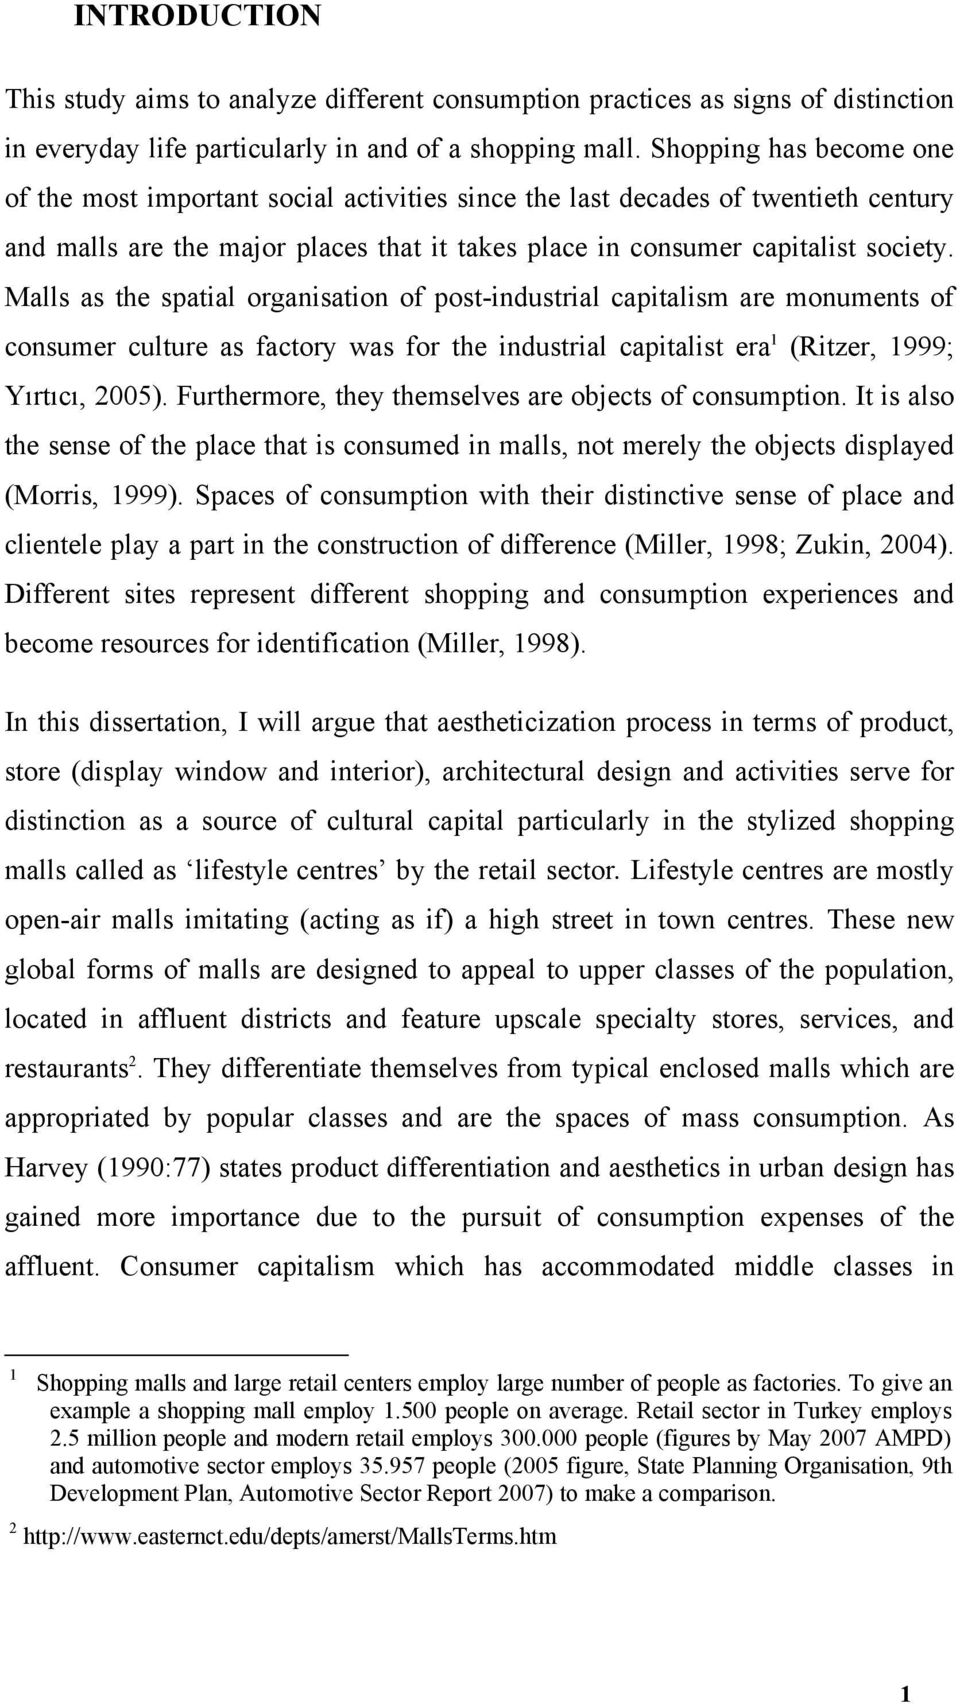 Malls as the spatial organisation of post-industrial capitalism are monuments of consumer culture as factory was for the industrial capitalist era 1 (Ritzer, 1999; Yırtıcı, 2005).